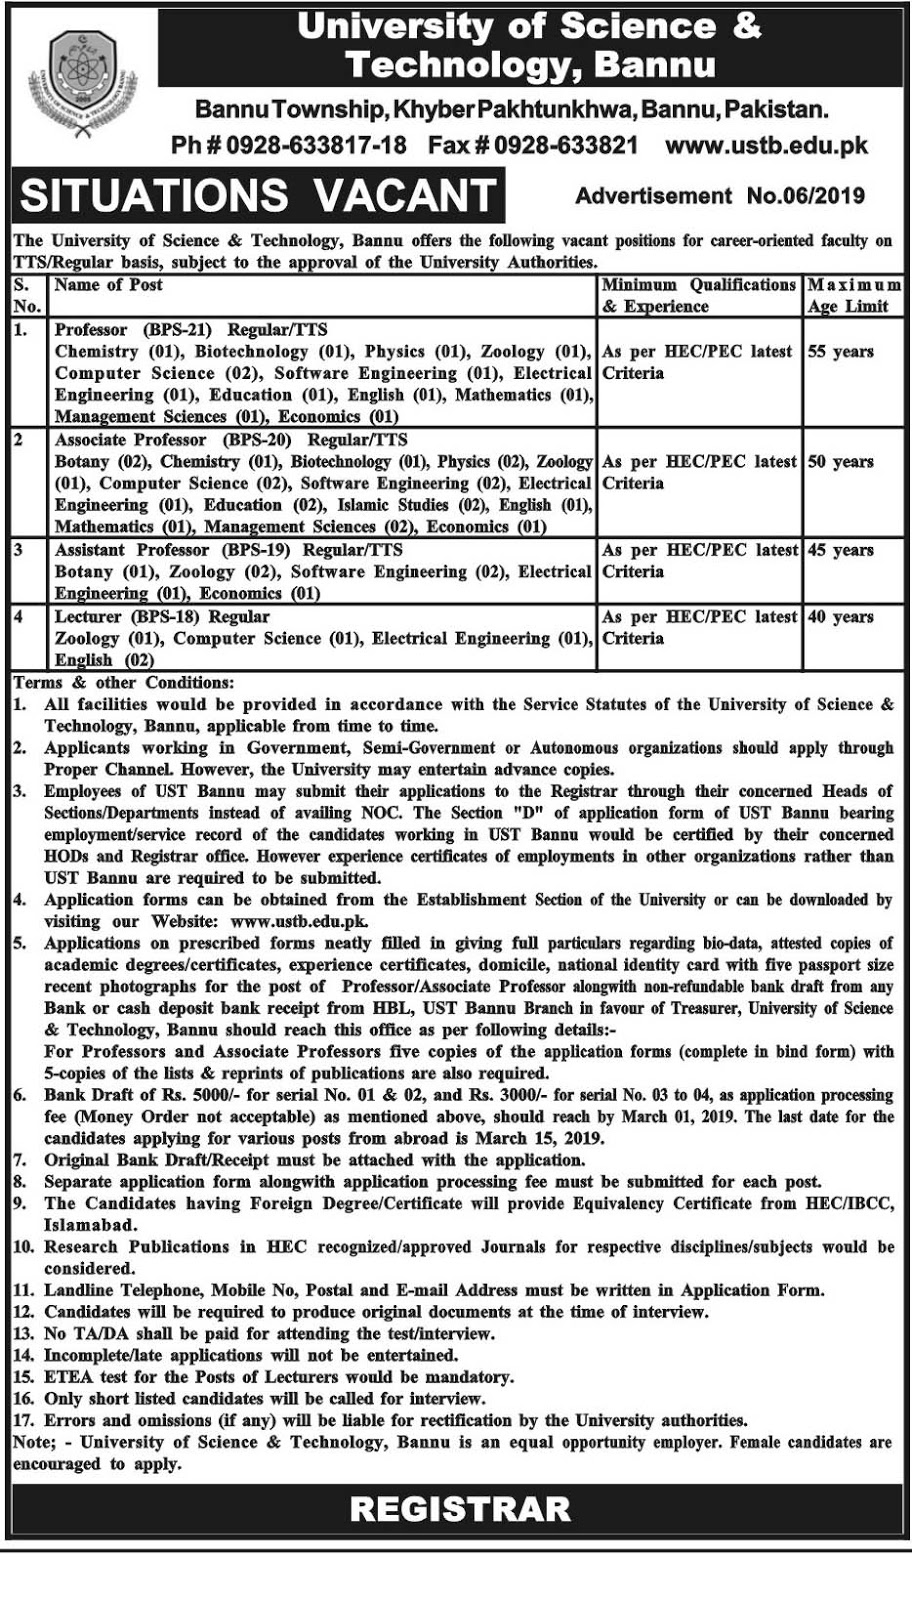 New Vacancies in Bannu, University of Science and Technology 07 Feb 2019